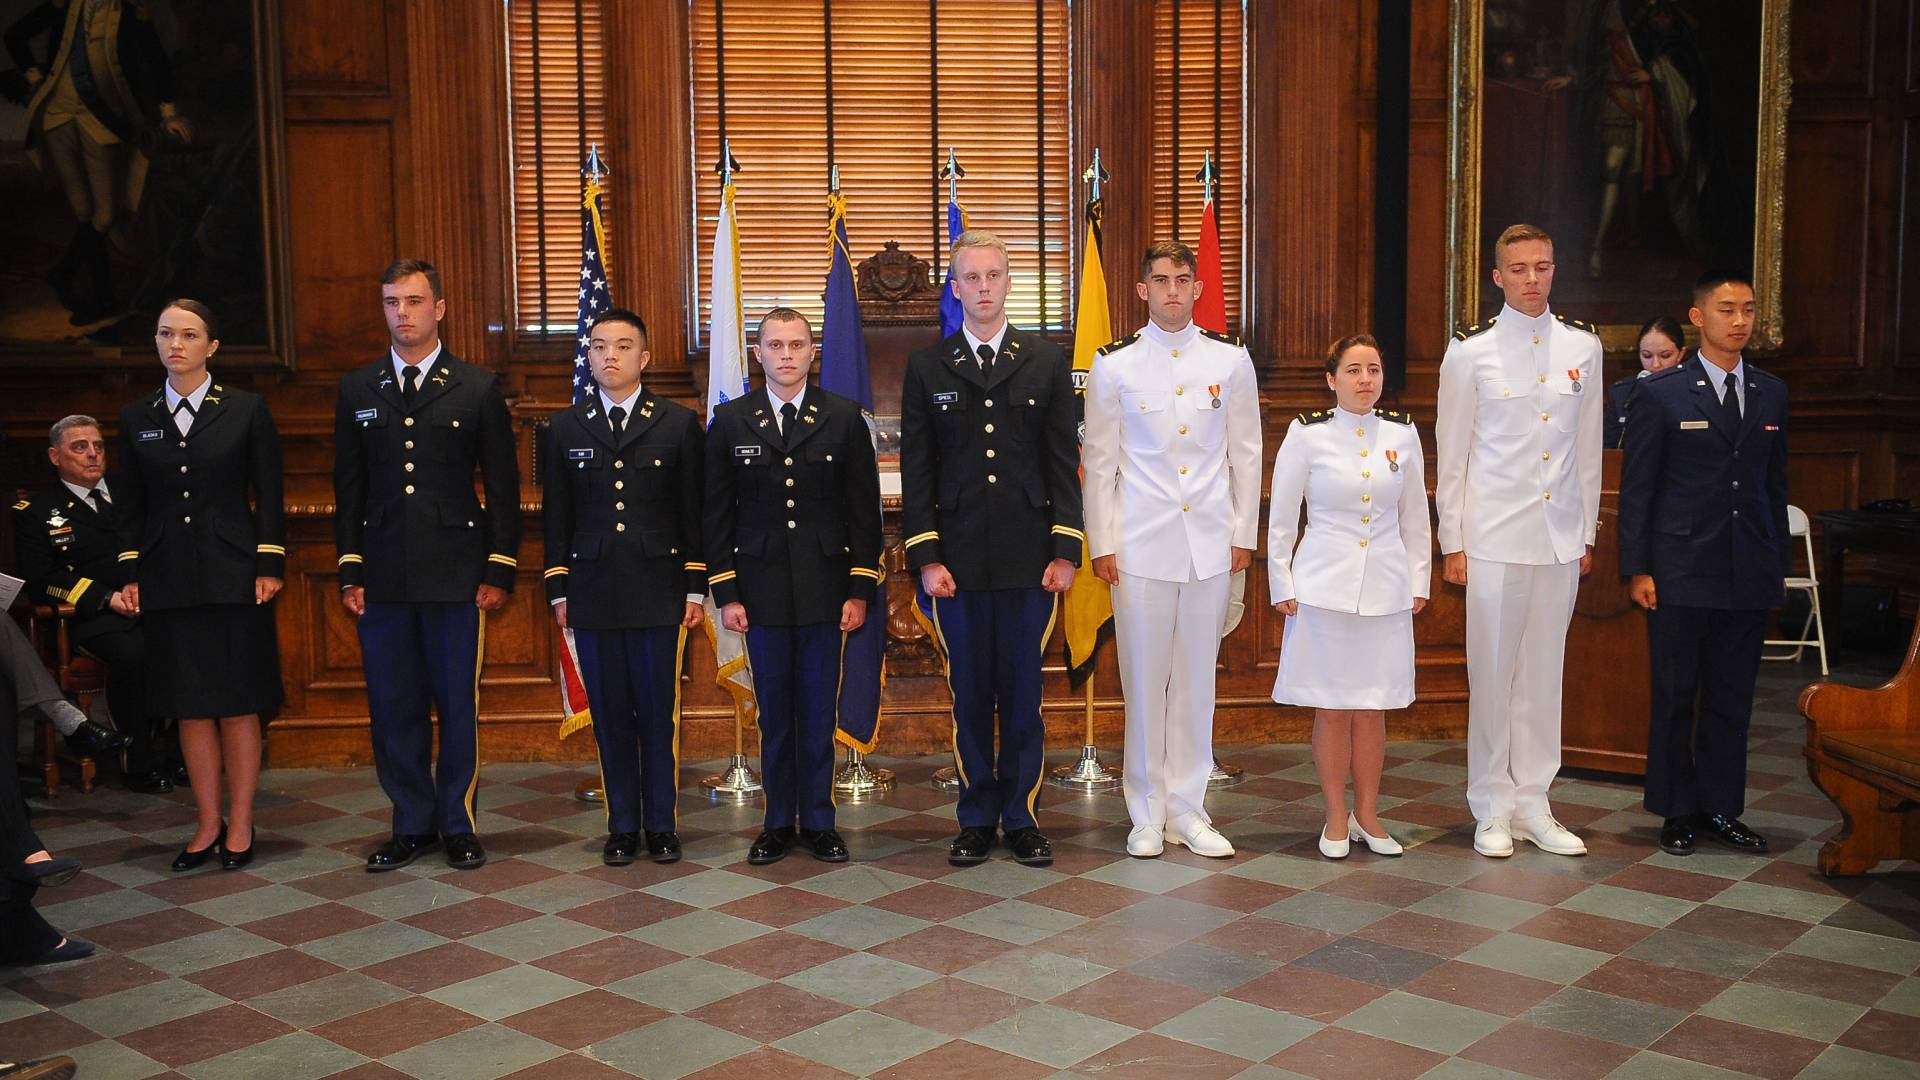 Graduates from Princeton's ROTC program stand together